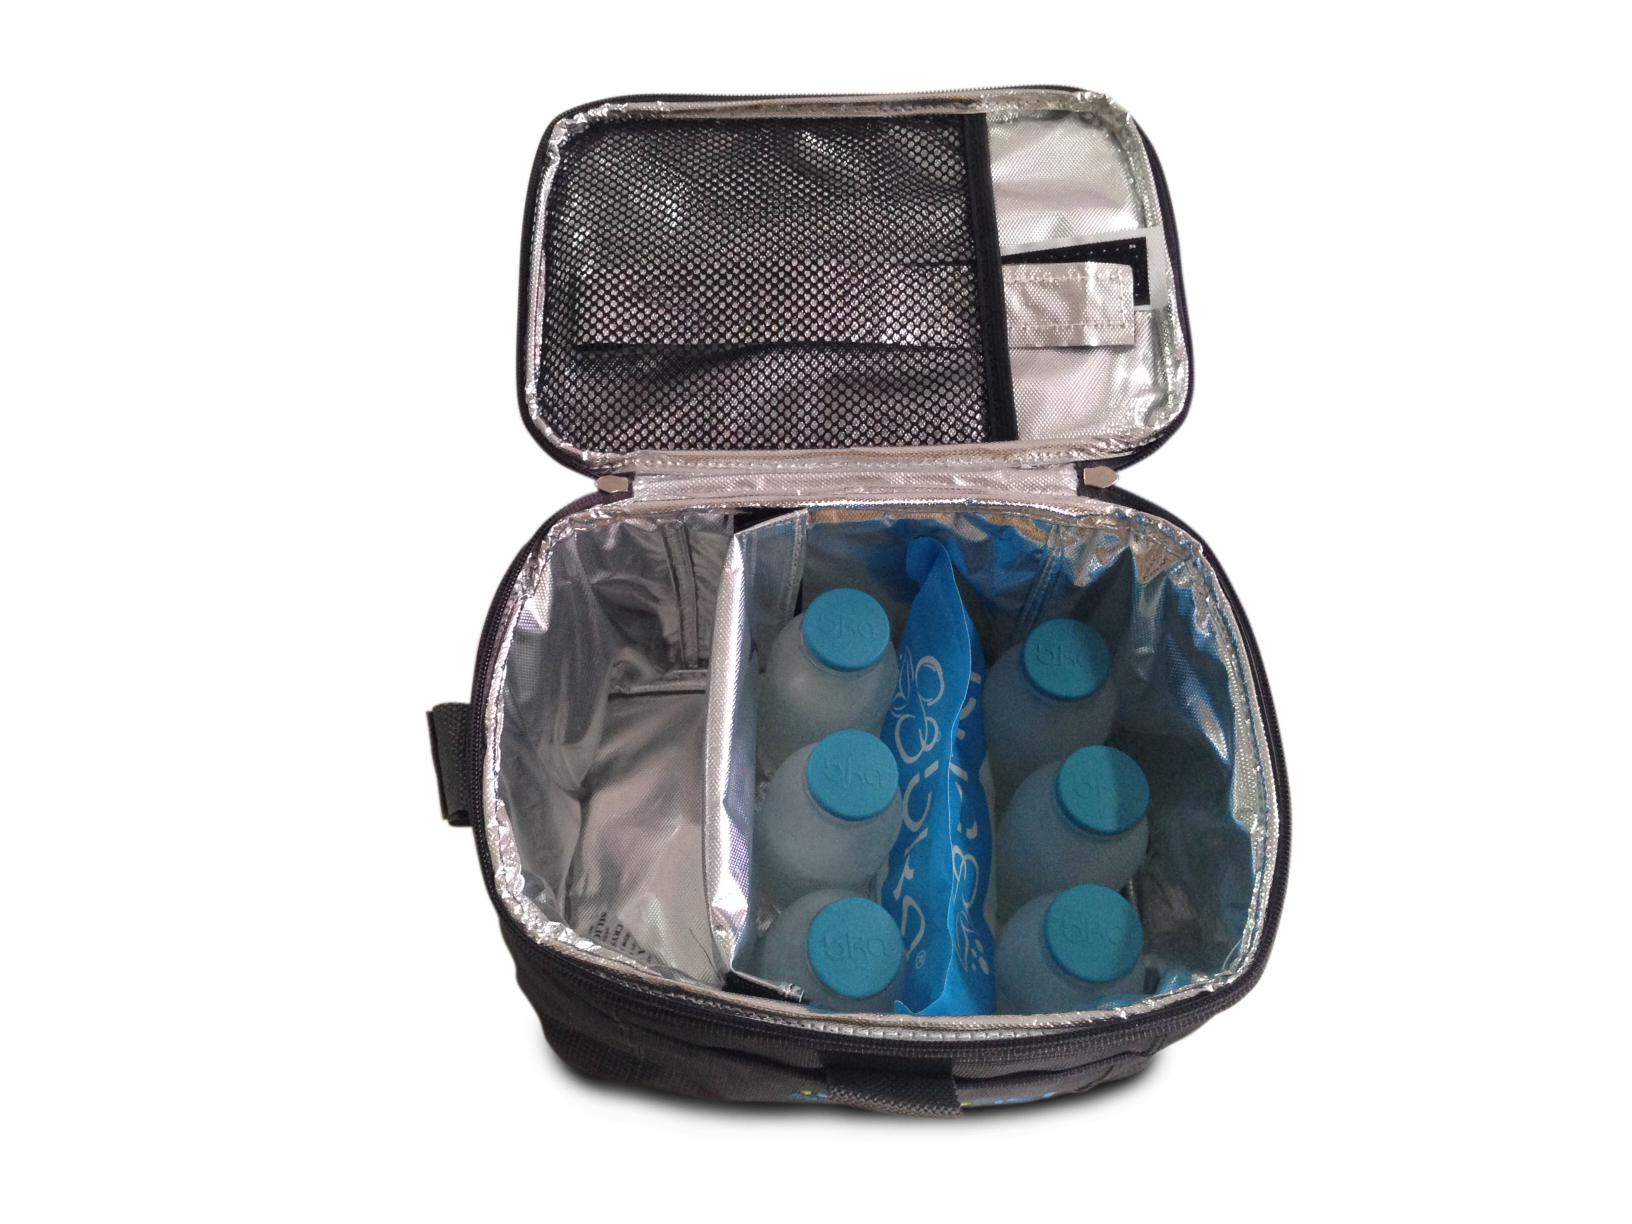 cooler bag isi 6 botol kaca asi + 1 ice gel asi besar